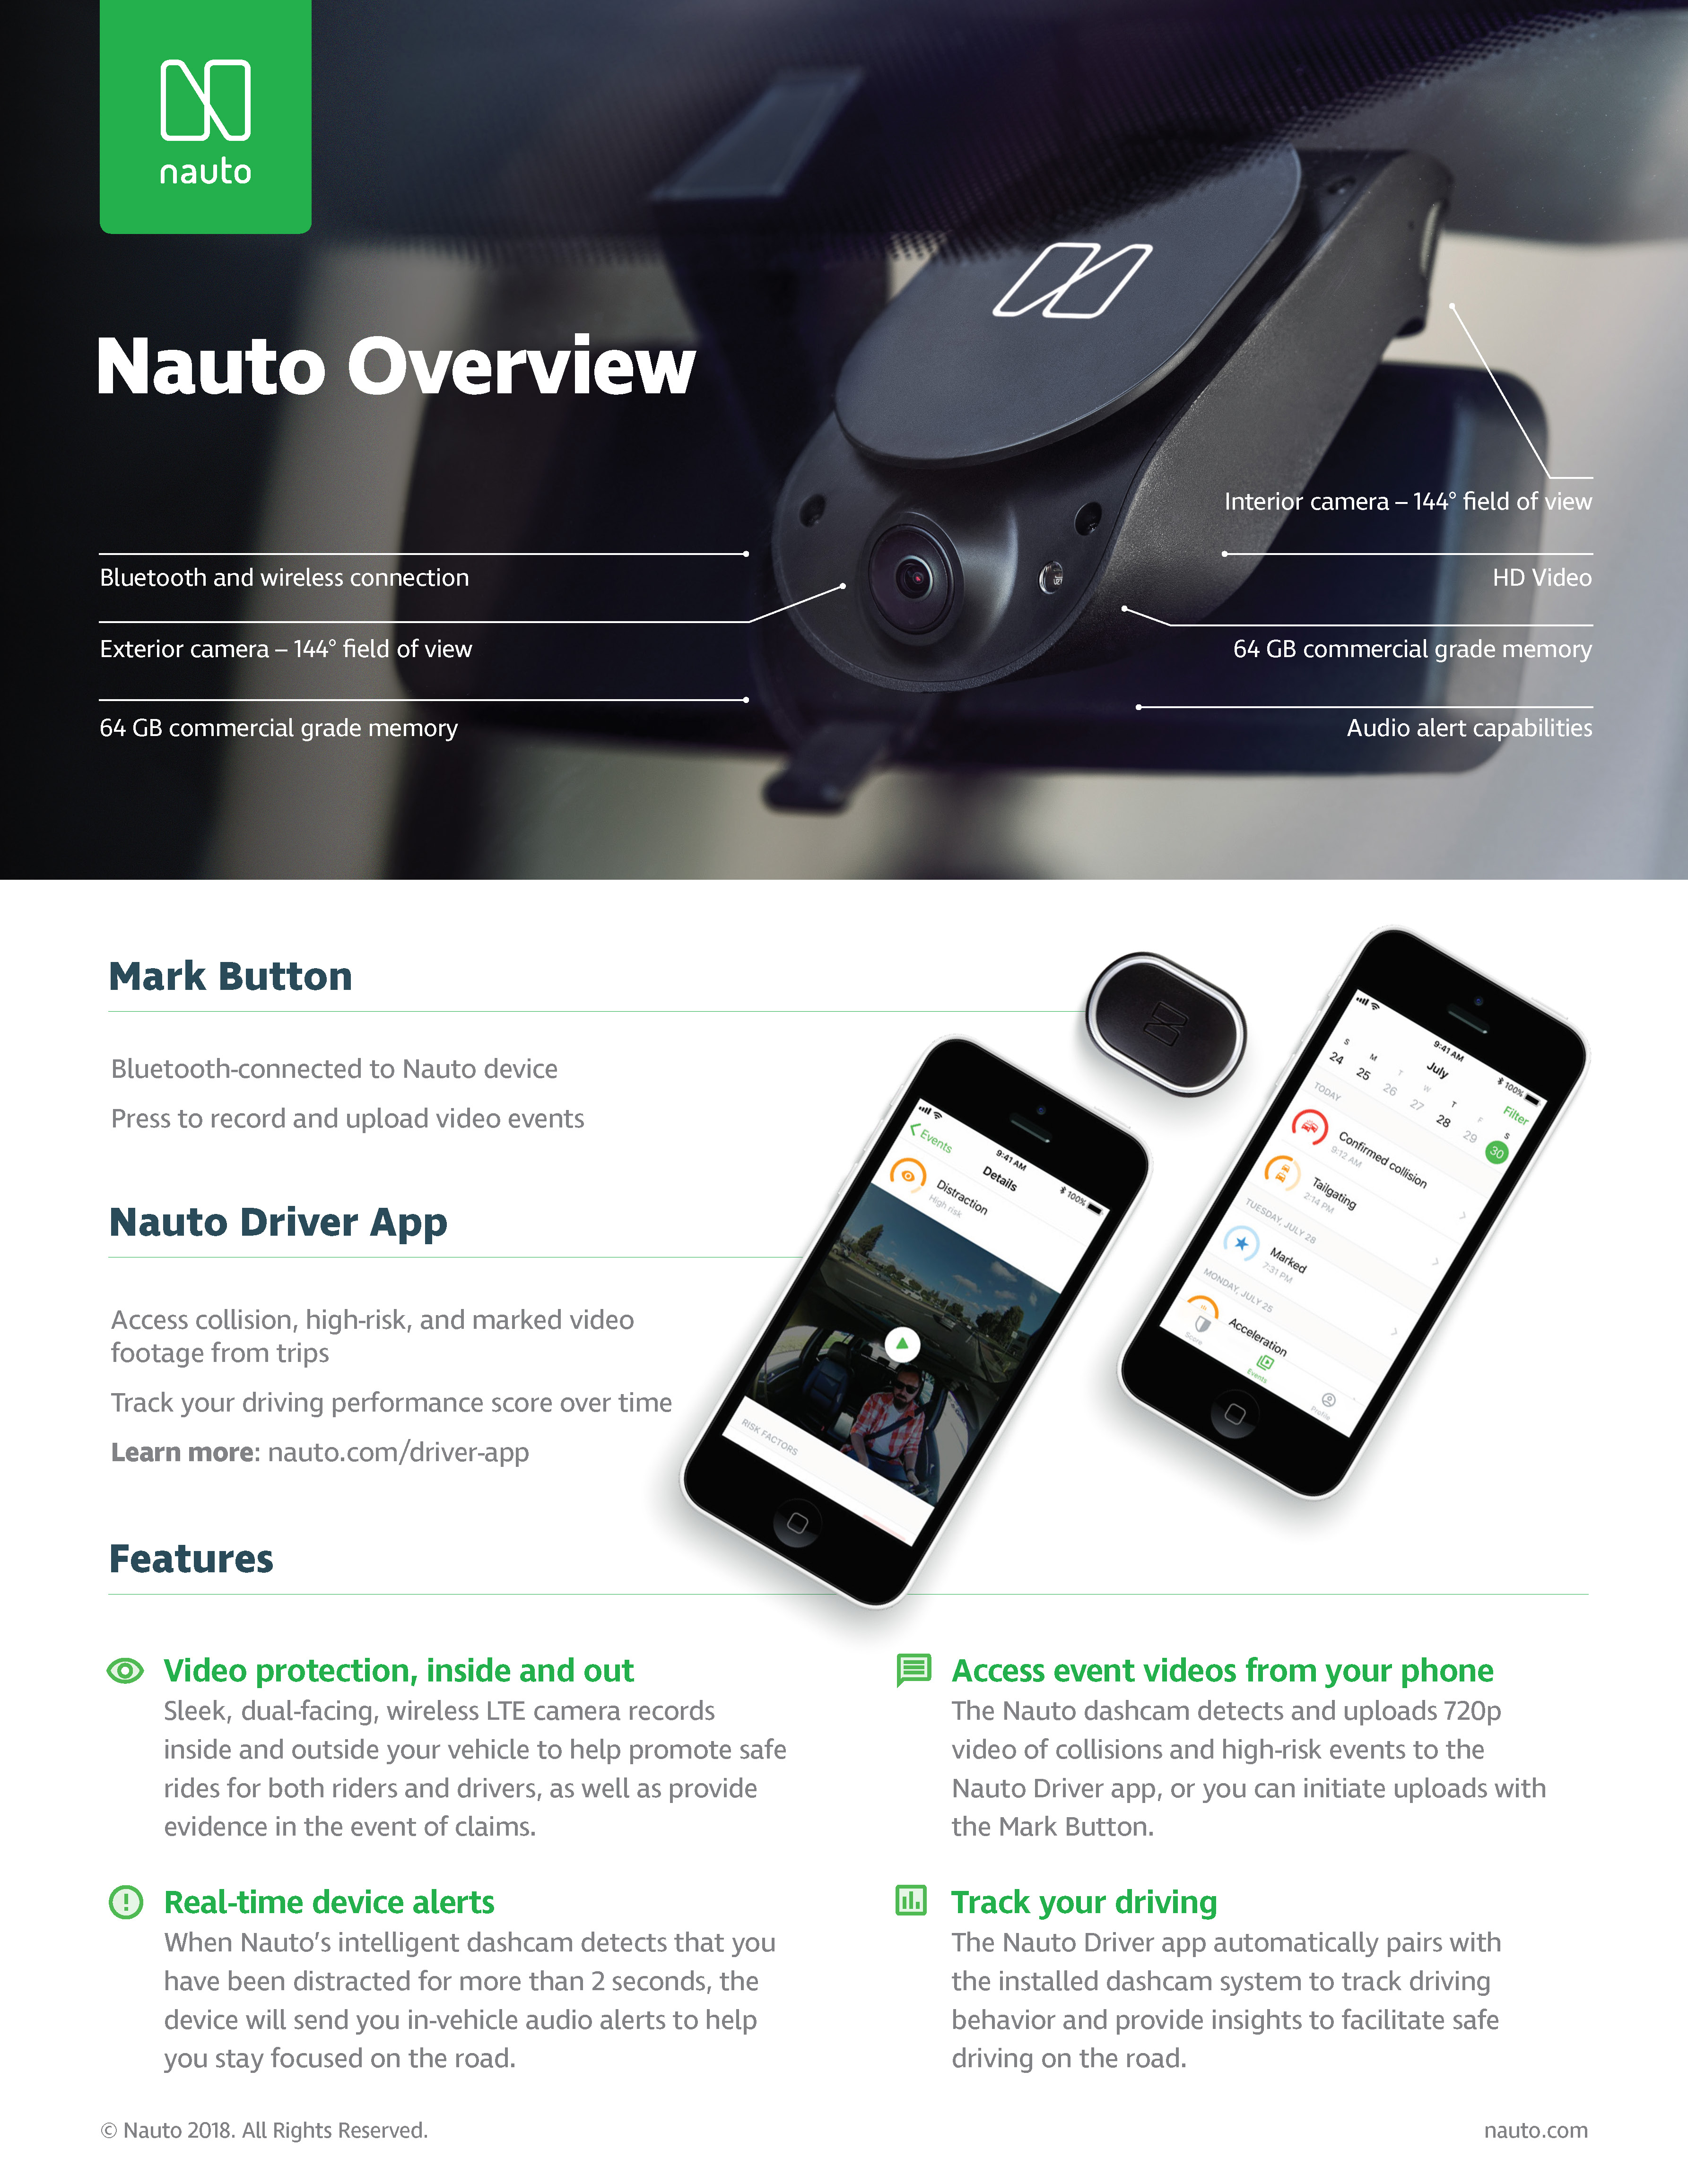 Nauto Overview page 1